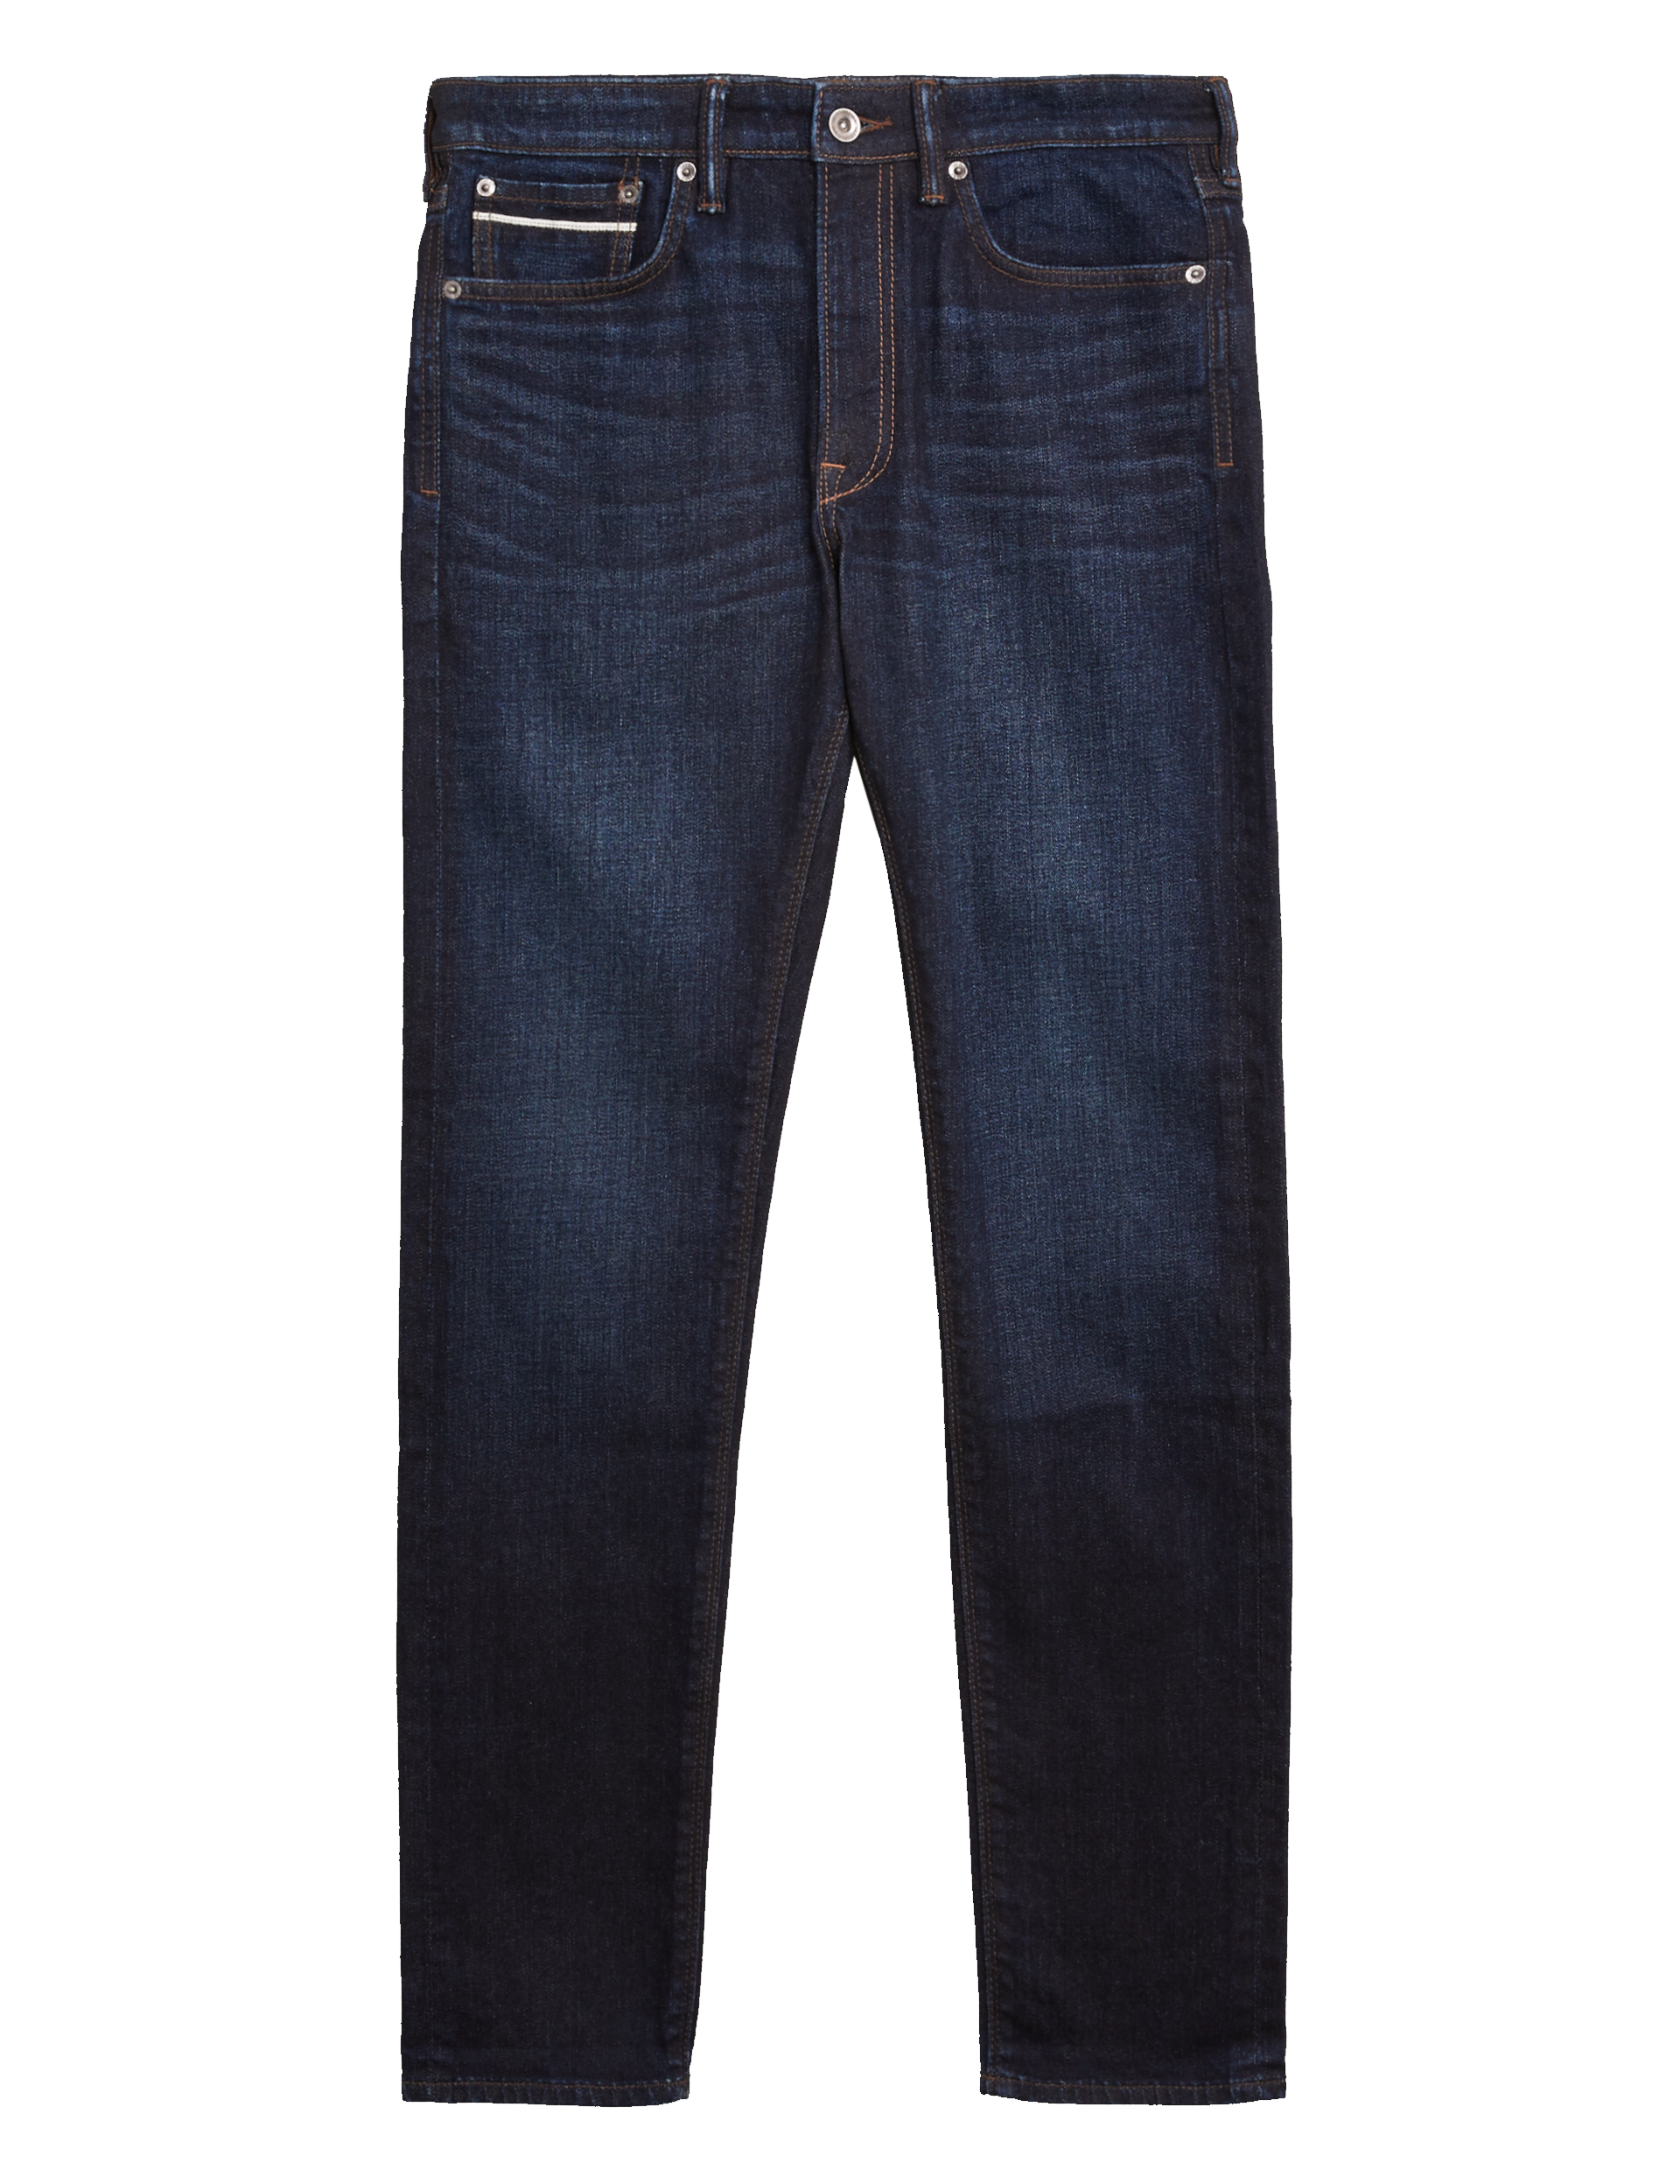 M&S Collection Mens Jeans £49.50.jpg